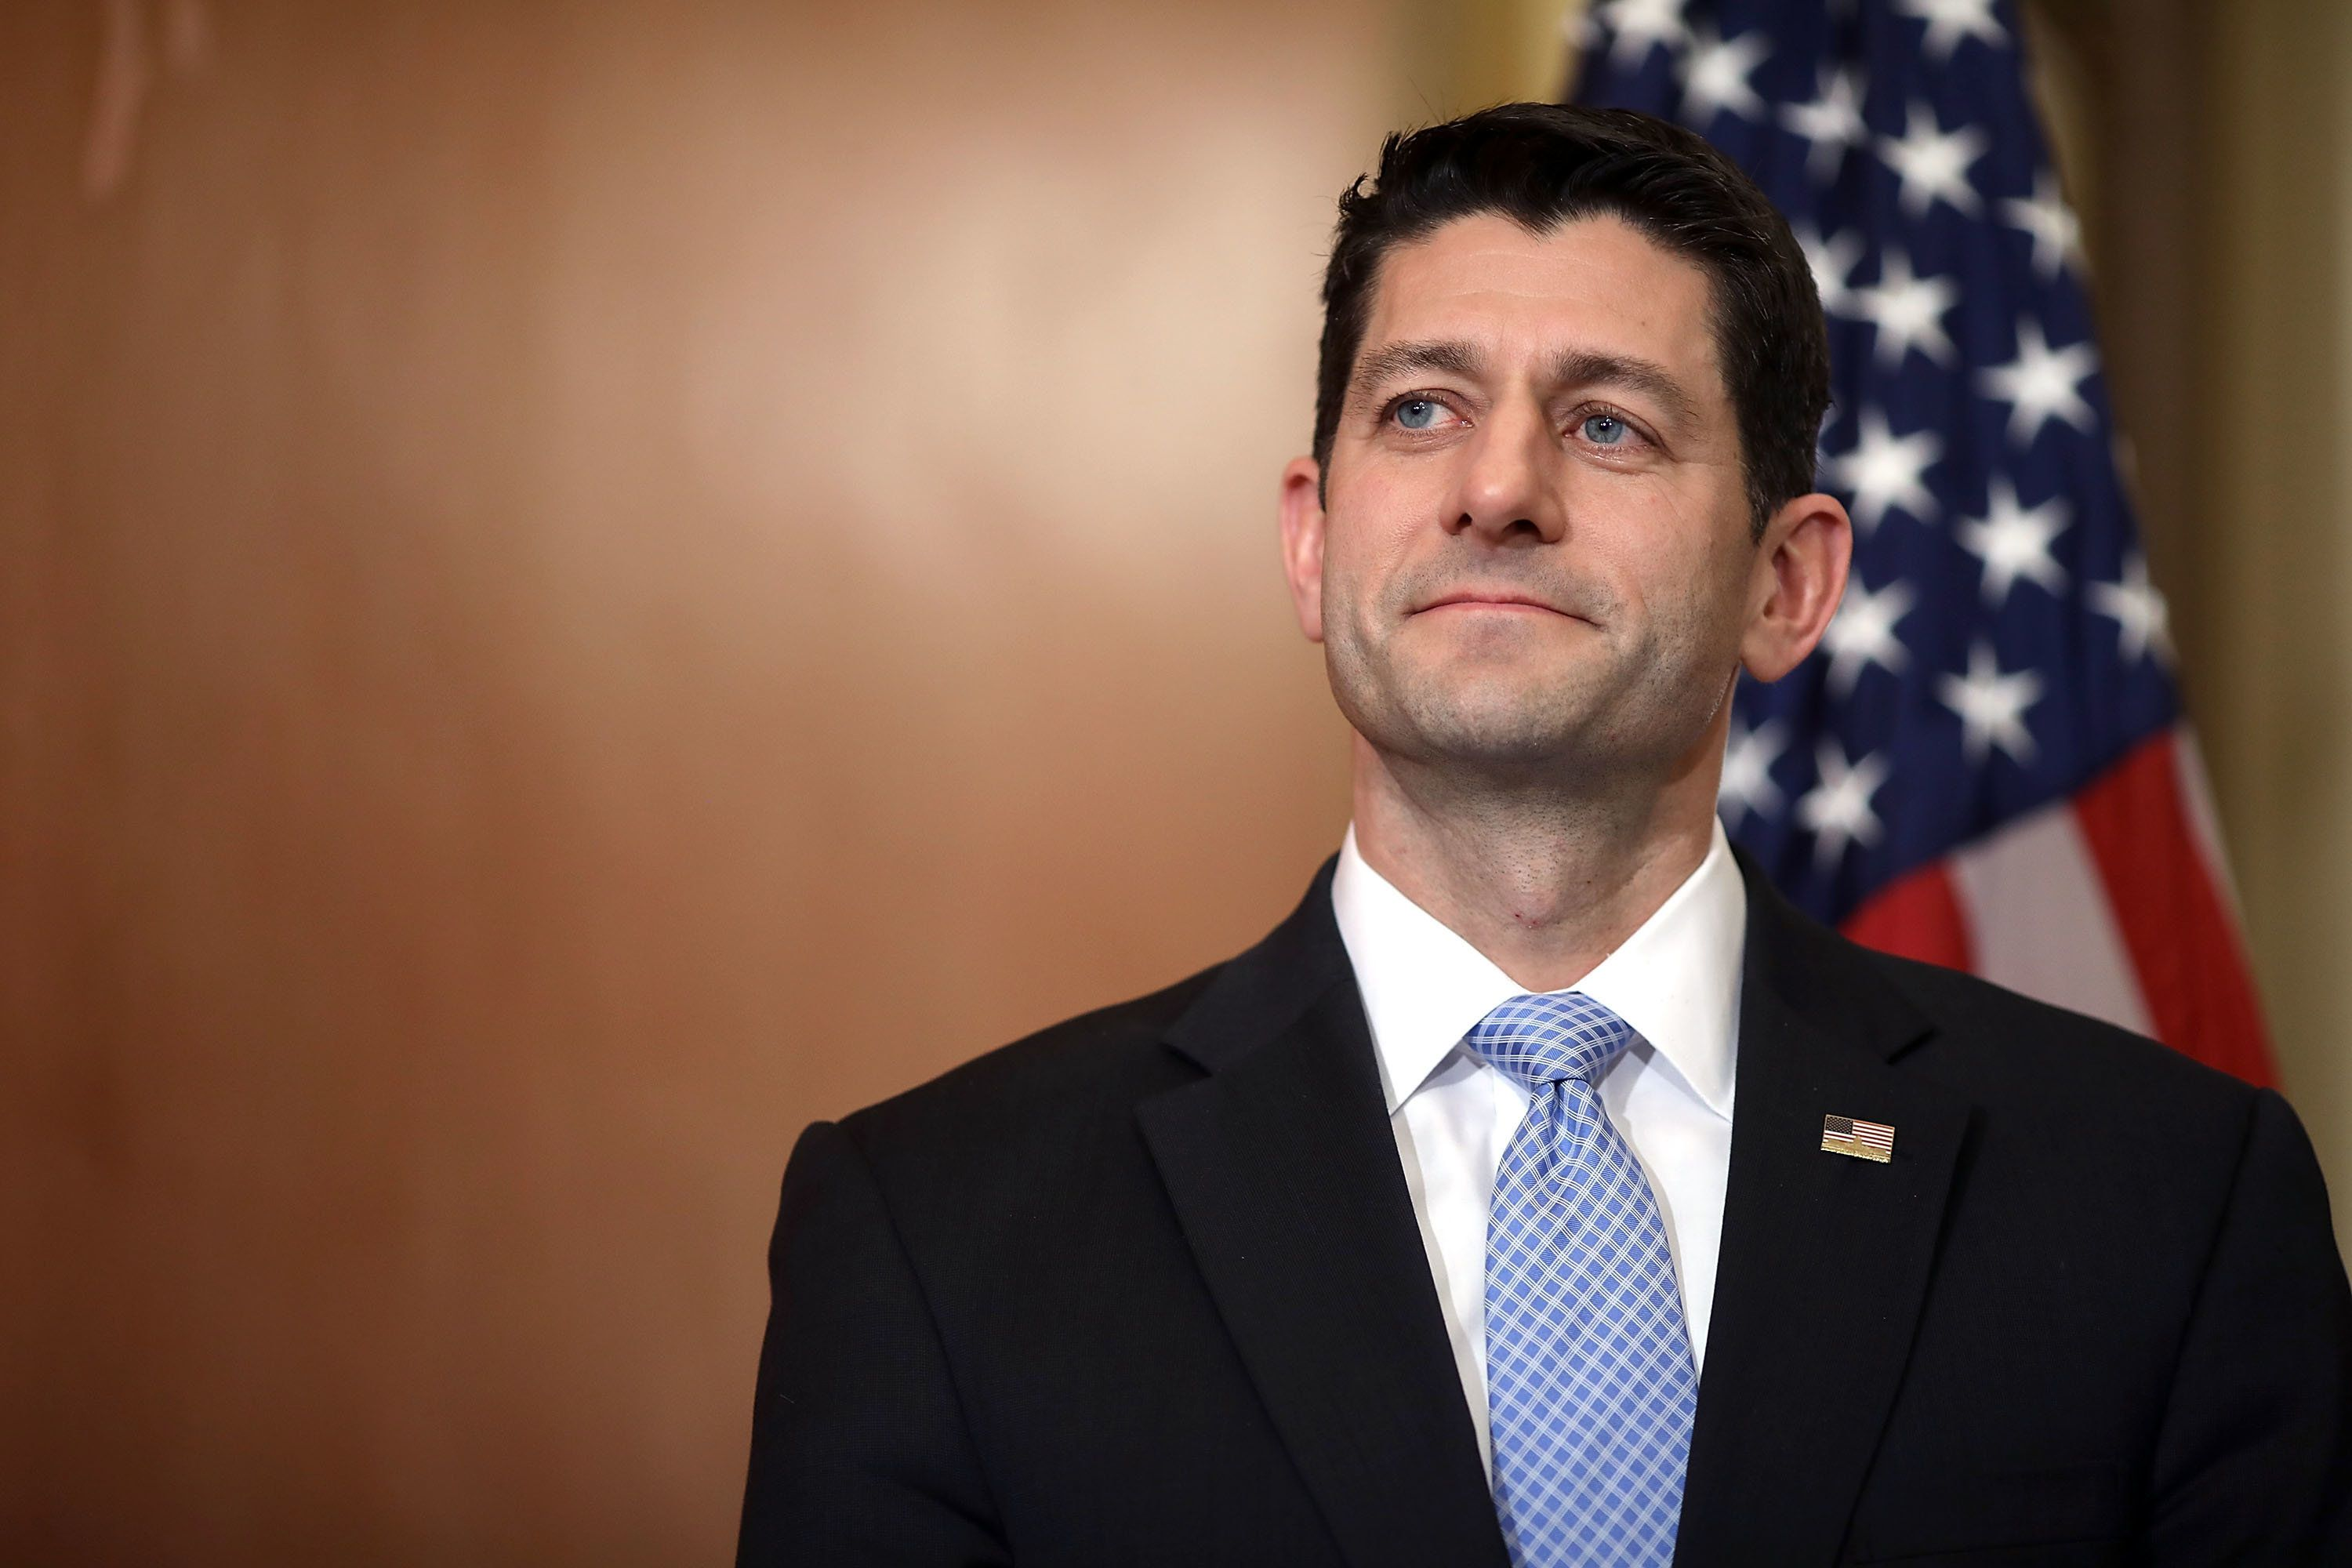 House Speaker Paul Ryan holds a press conference on March 7.